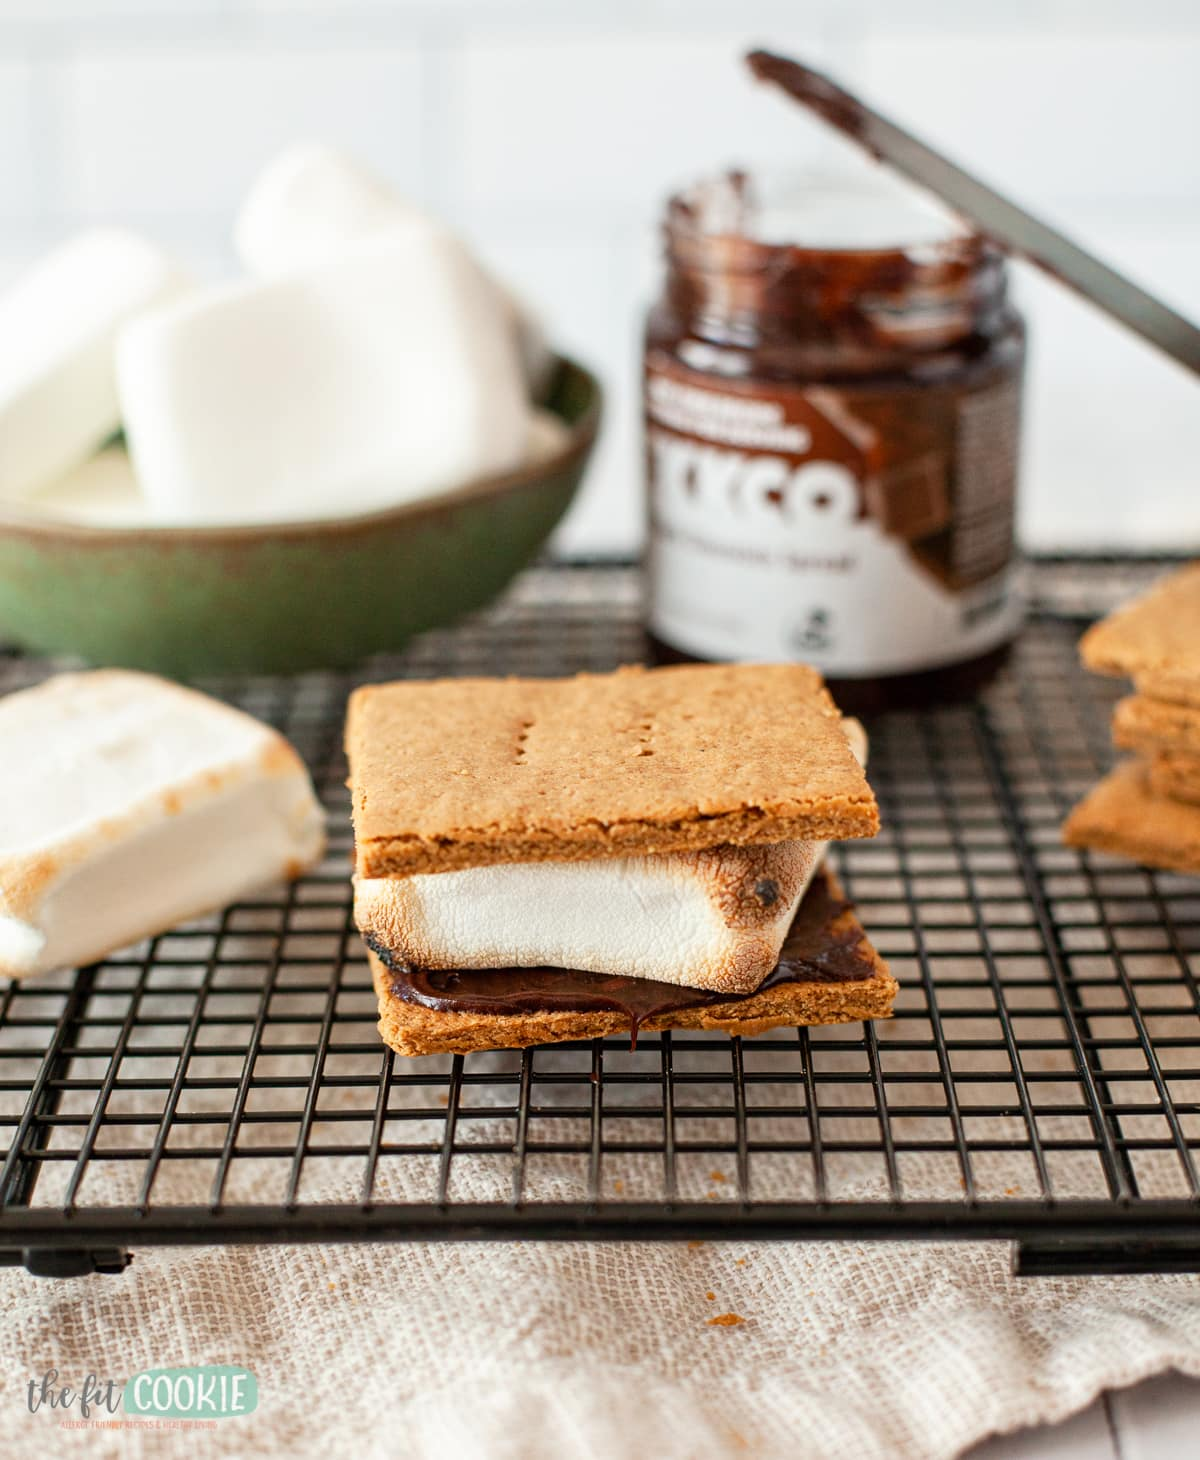 s'more made with homemade gluten free graham crackers